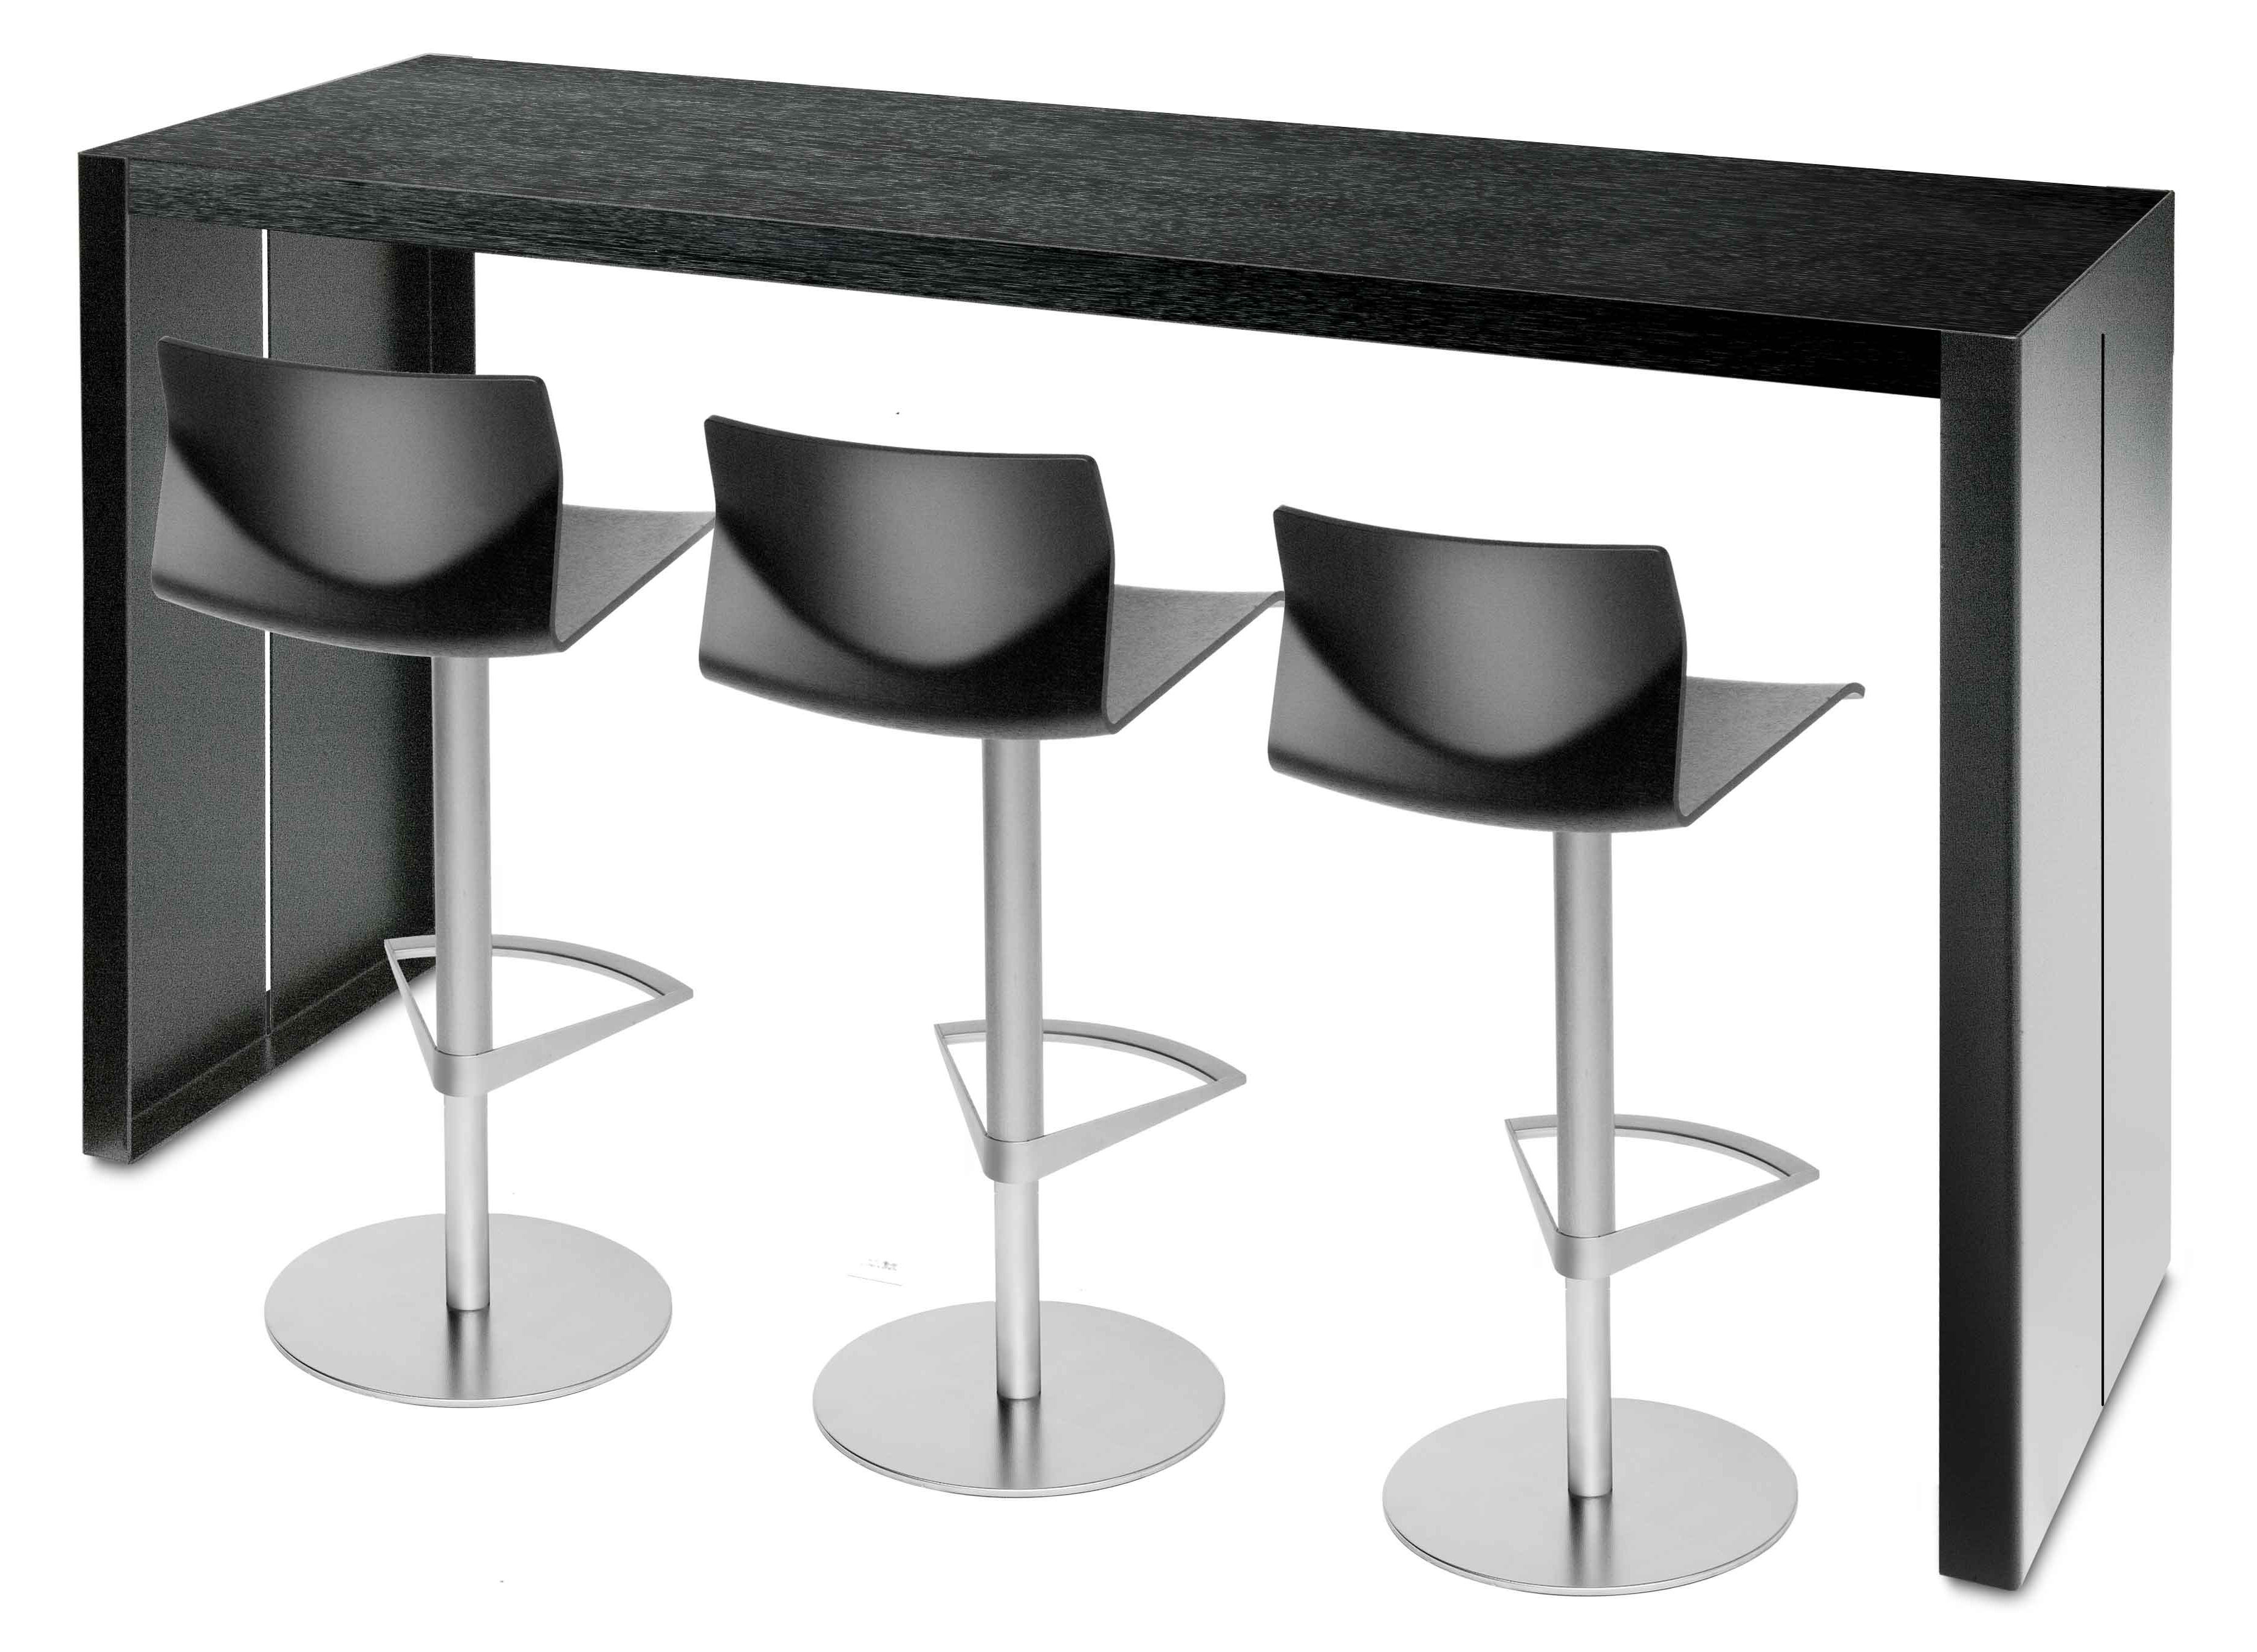 panco h 110 cm la palma hoher tisch. Black Bedroom Furniture Sets. Home Design Ideas